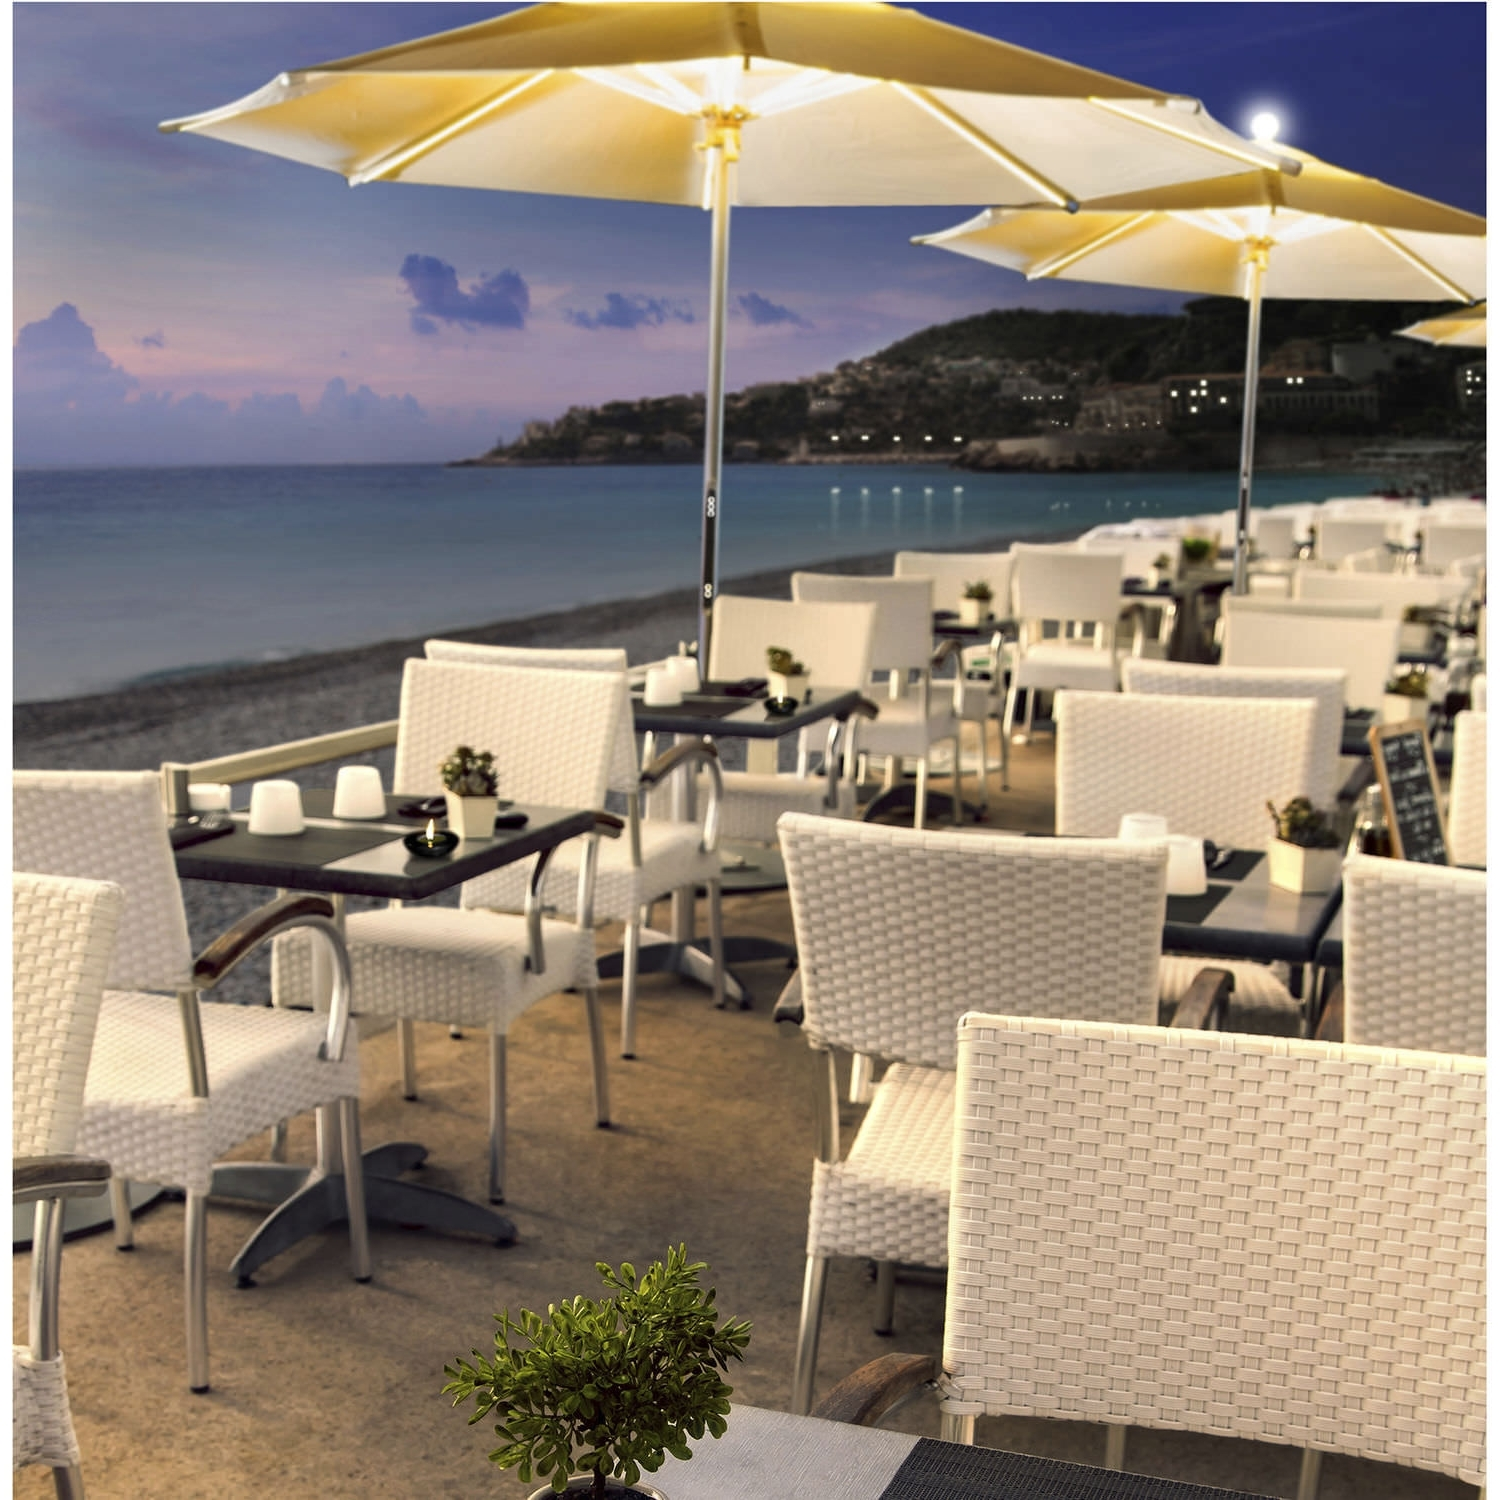 Most Current Commercial Patio Umbrellas Sunbrella Regarding Commercial Patio Umbrella / Teak / Aluminum / With Heater – Ni (View 11 of 20)